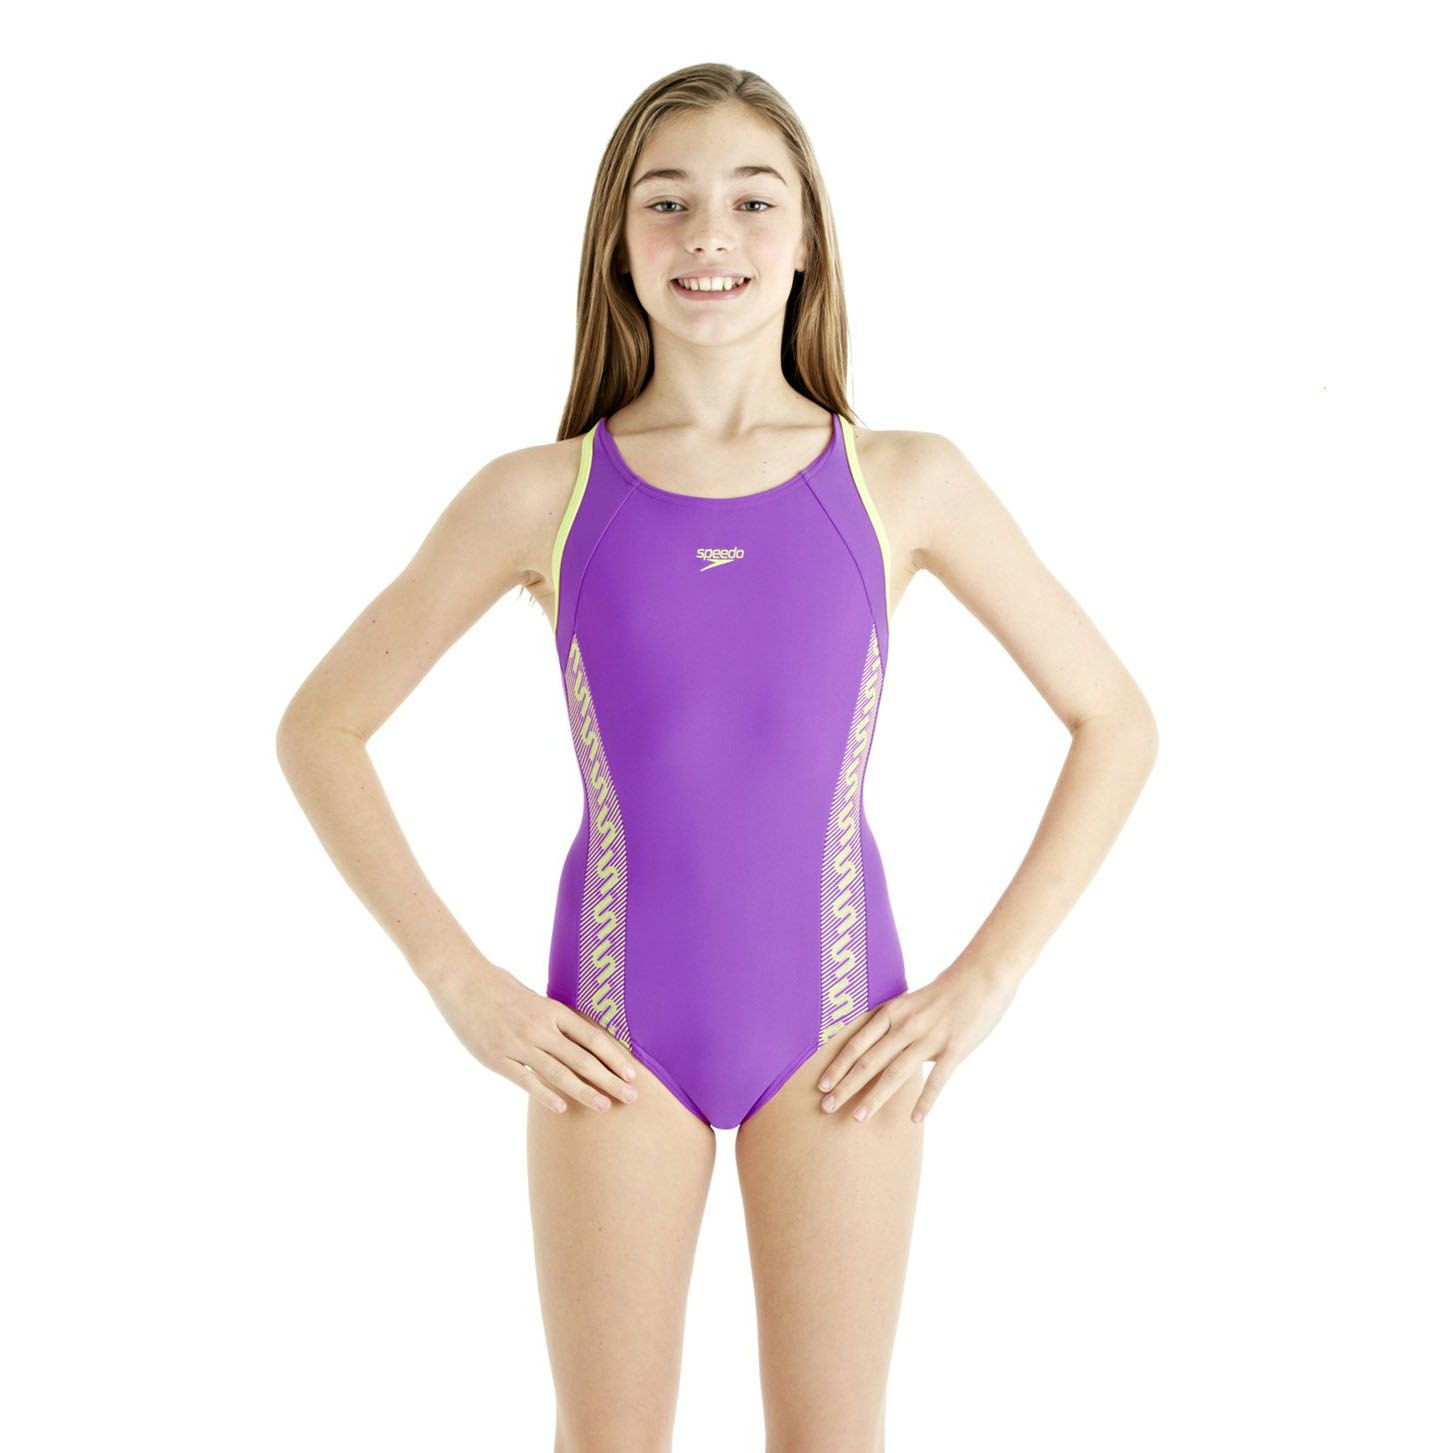 speedo monogram swimsuit